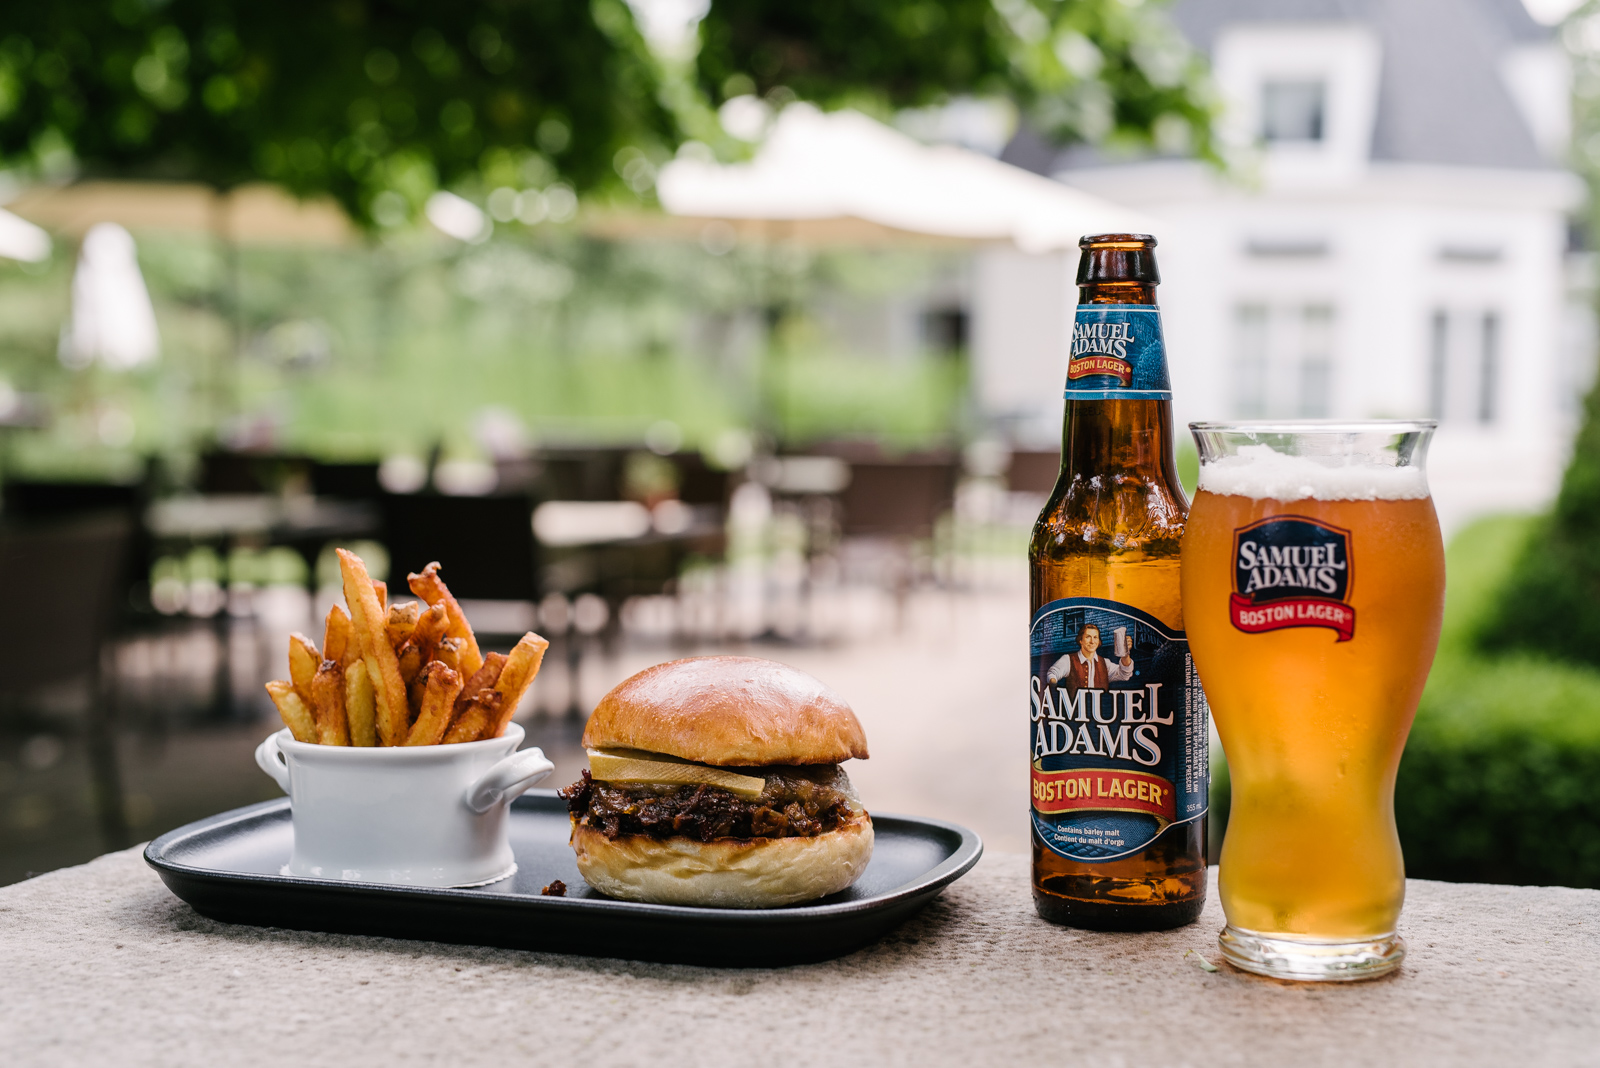 Burger and beer pairing